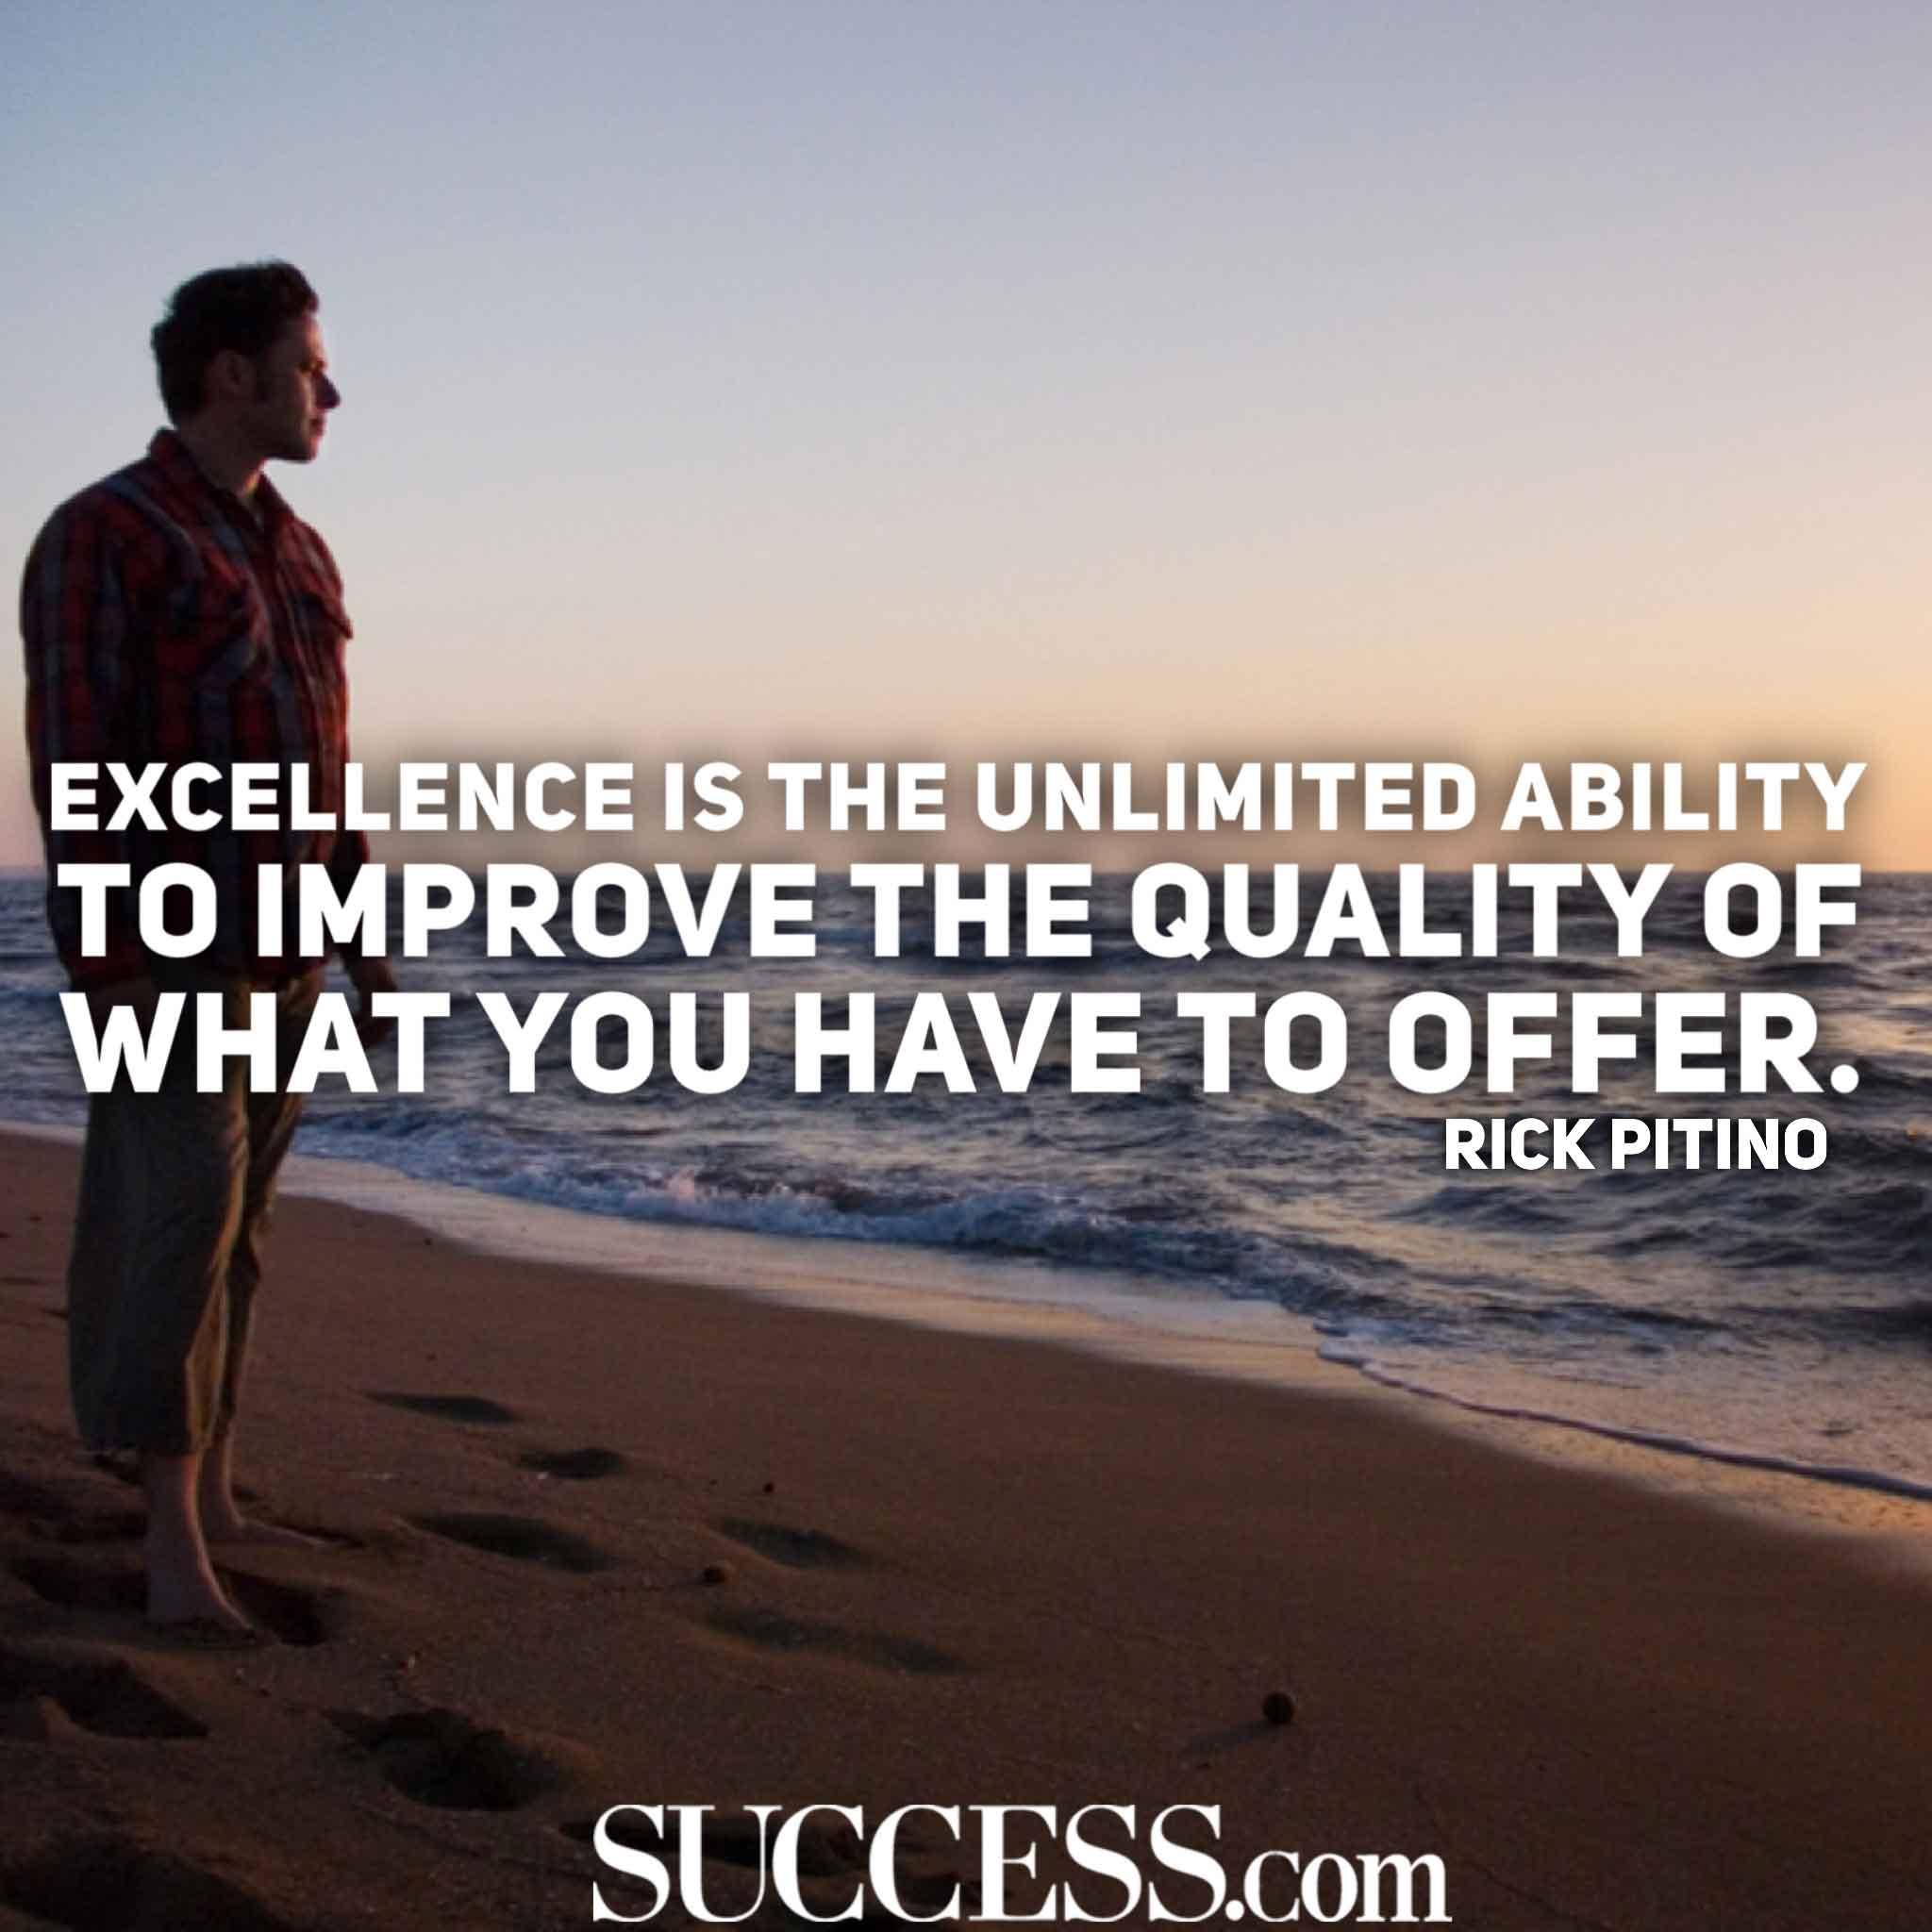 13 Motivational Quotes to Inspire Excellence